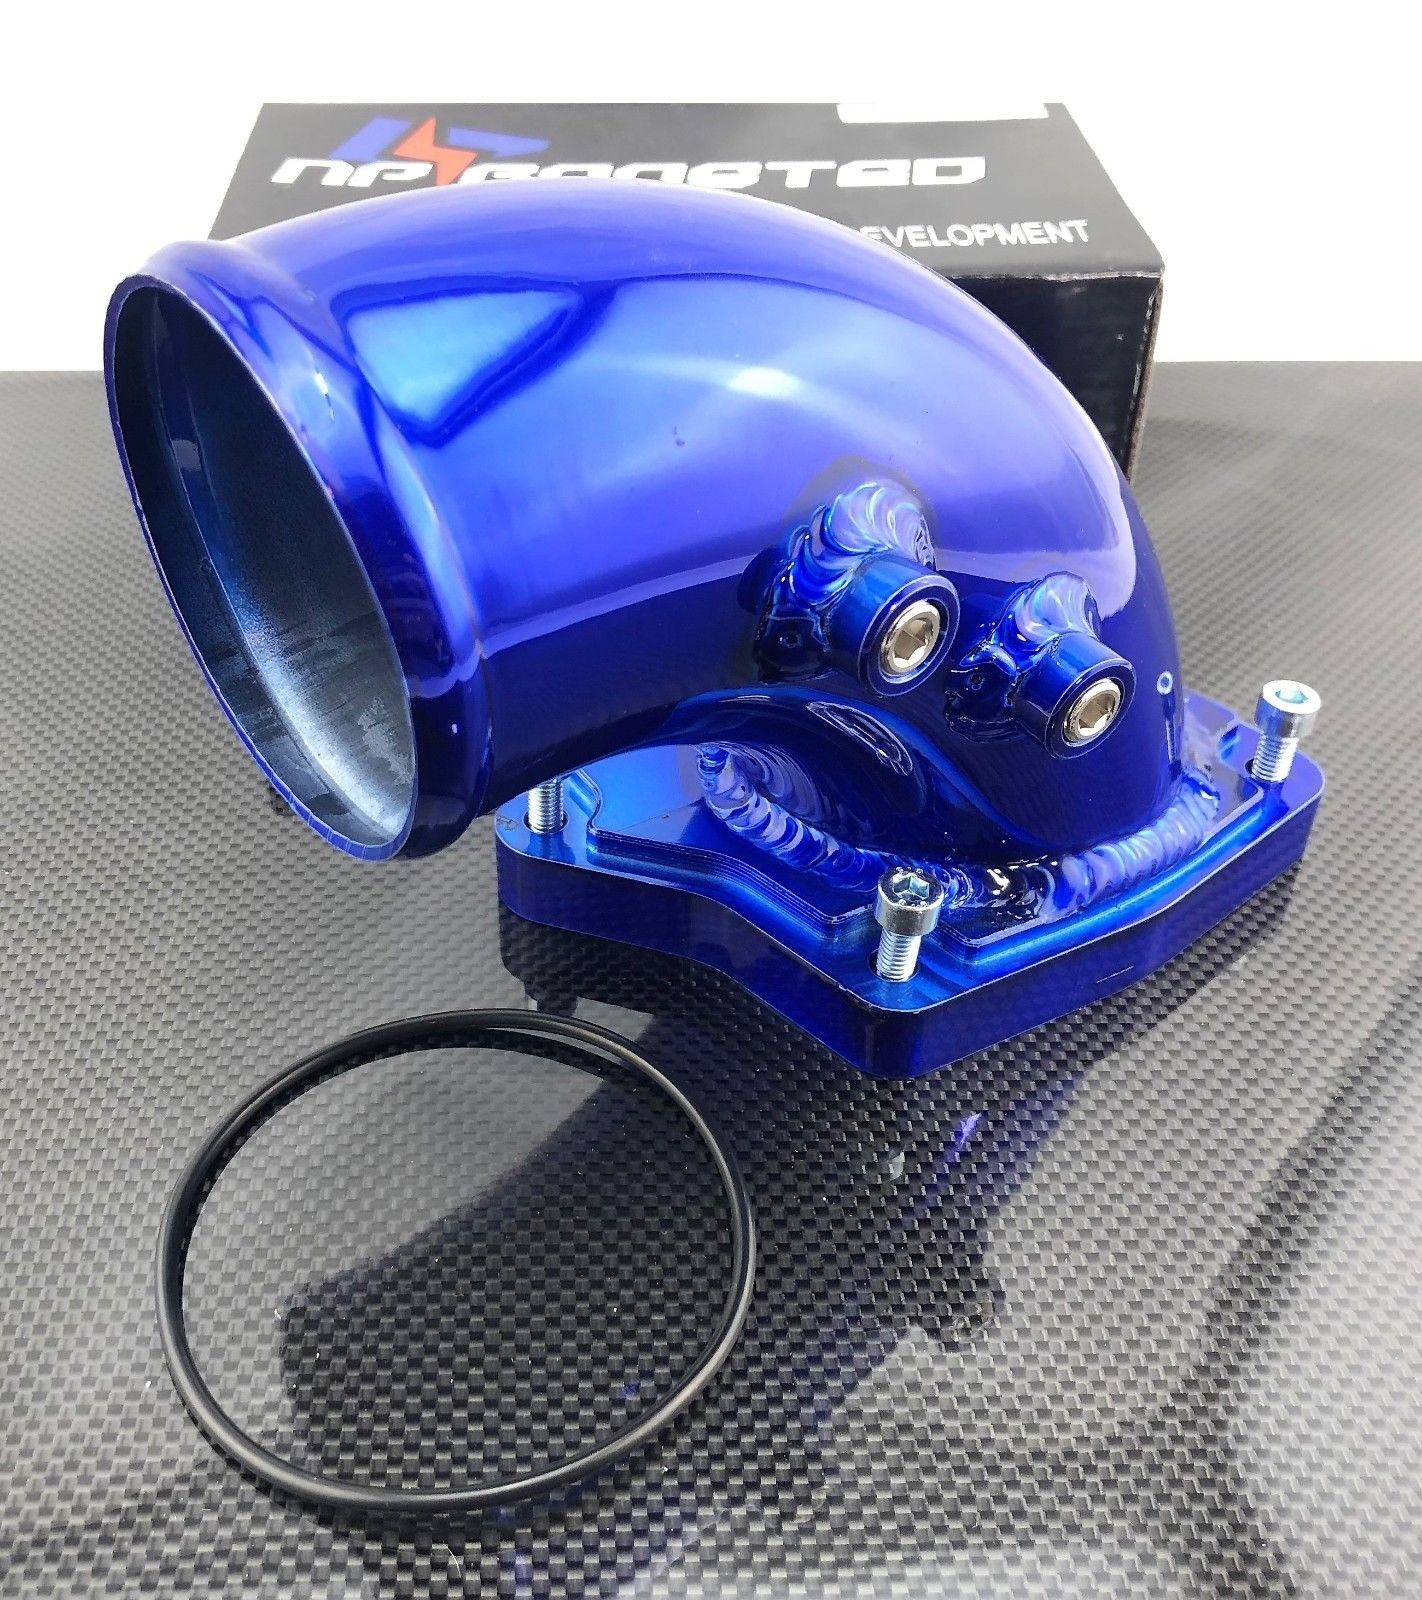 Blue 90 Degree Air Inlet Diesel Intake Elbow w/ Gasket & Bolts Fits 2003-2007 Ford 6.0L Powerstroke